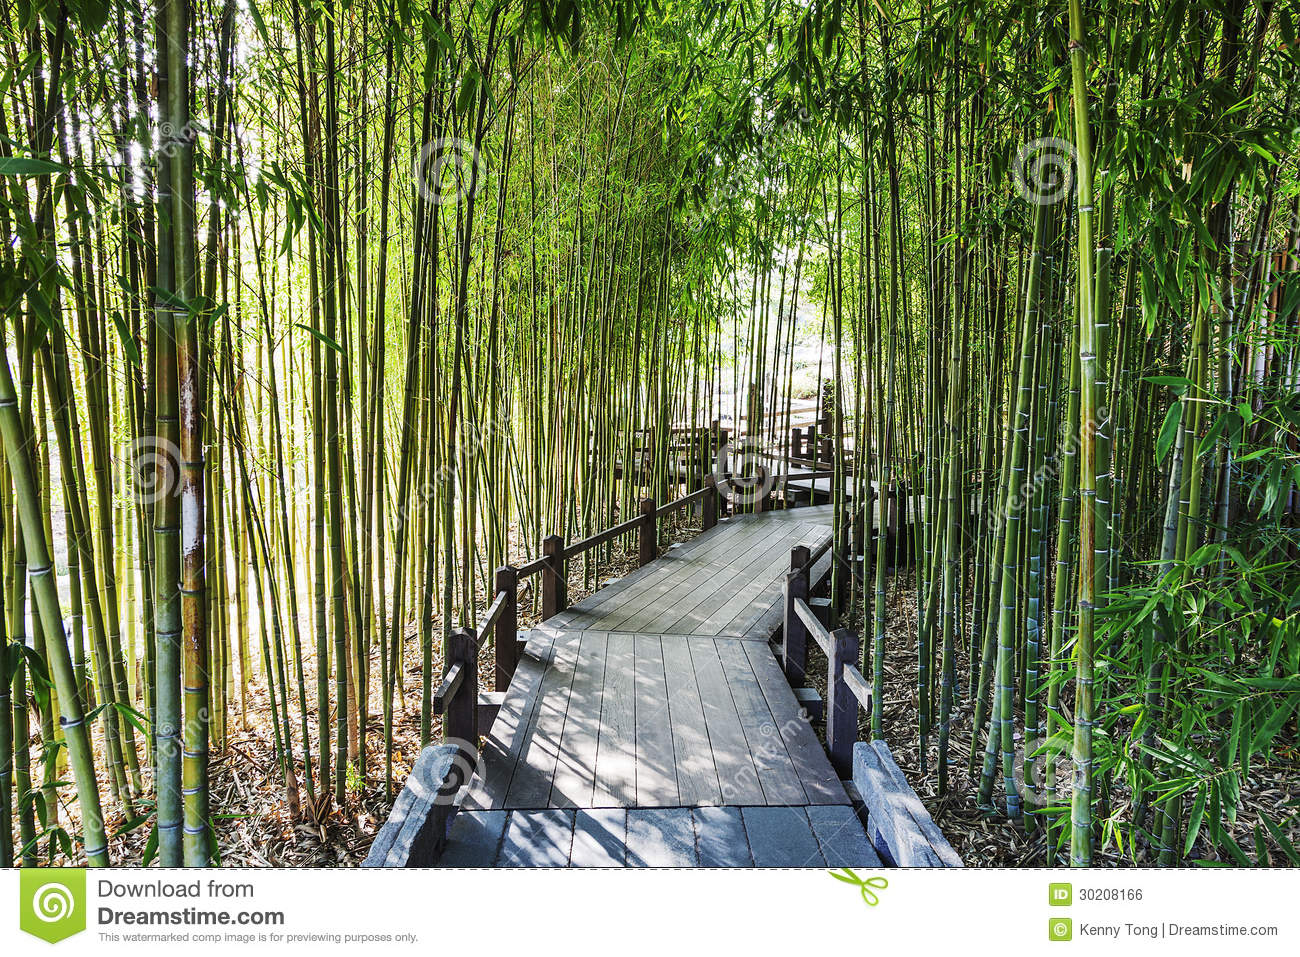 Bamboo Garden Royalty Free Stock Image - Image: 30208166